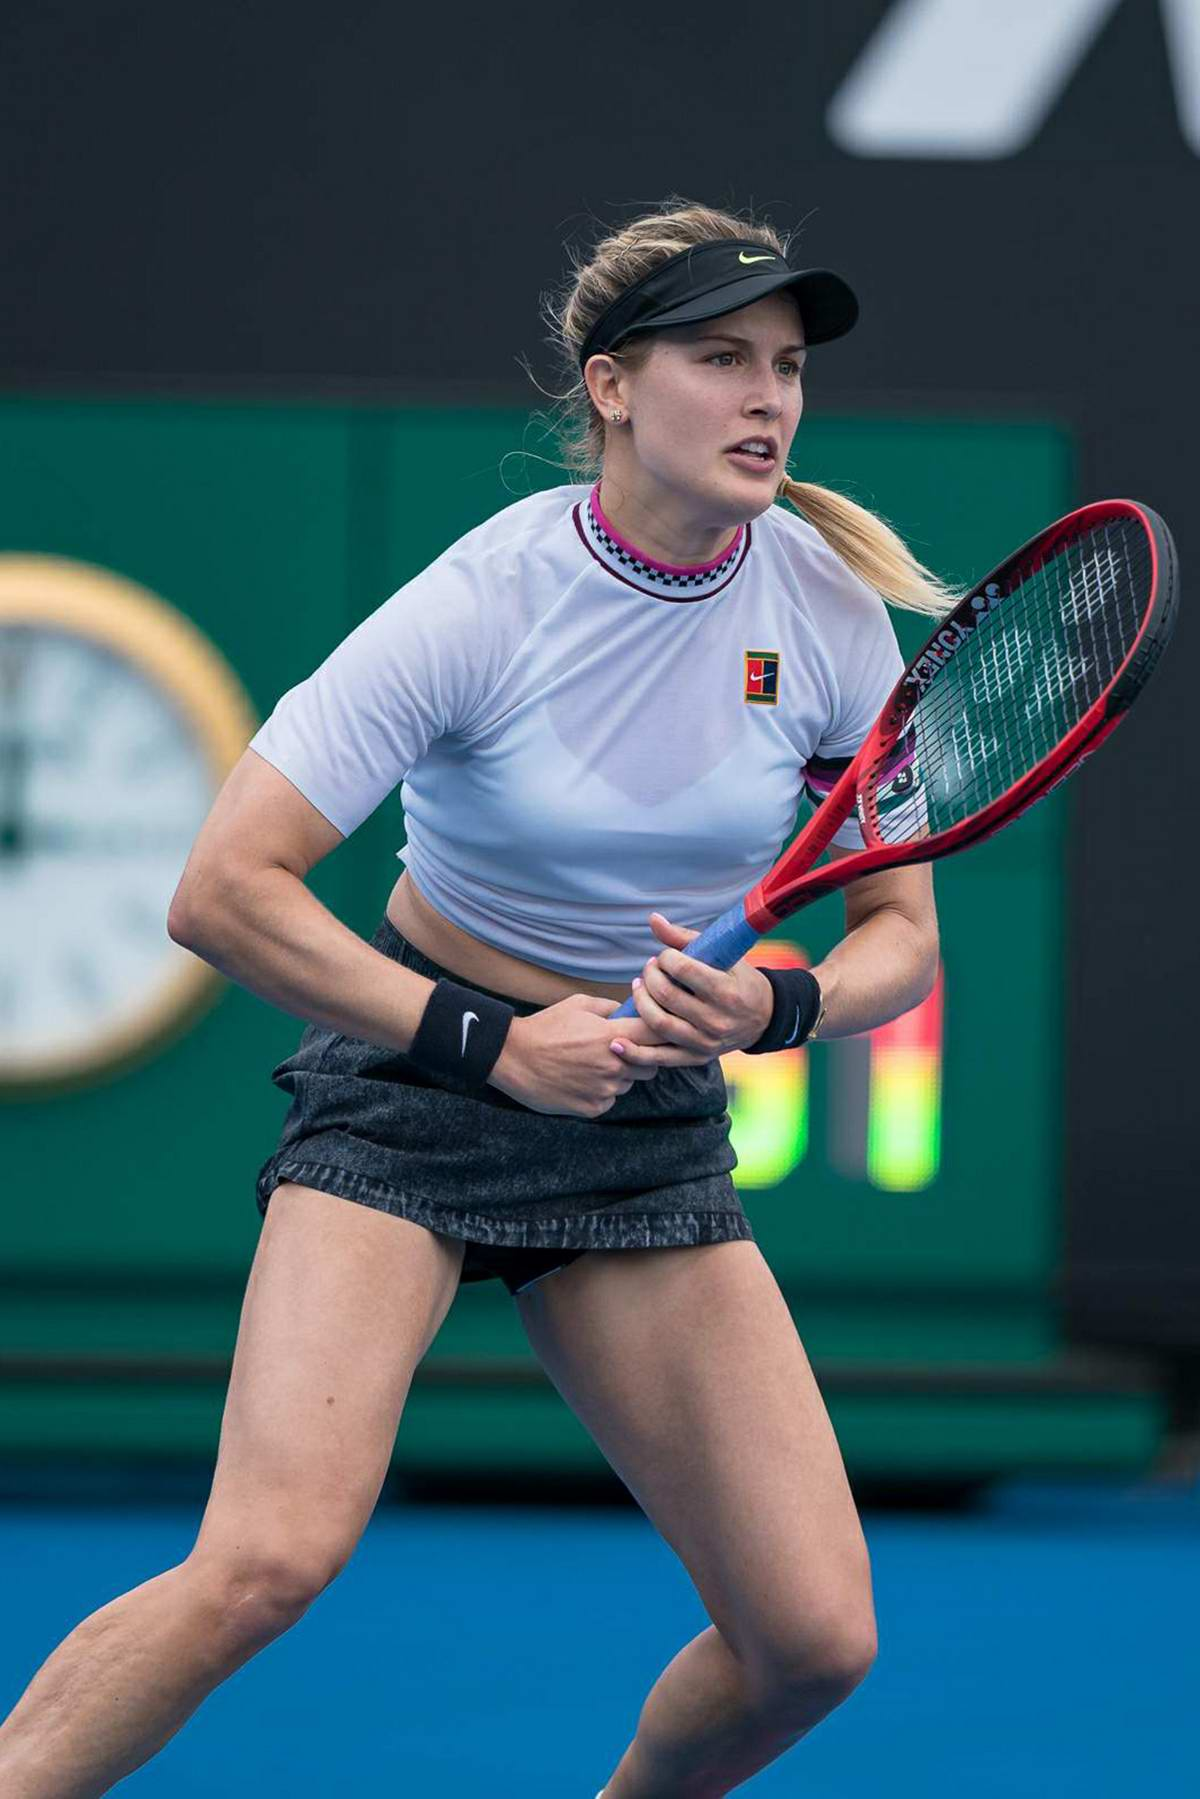 Eugenie Bouchard in action during the 2019 Australian Open in Melbourne, Australia